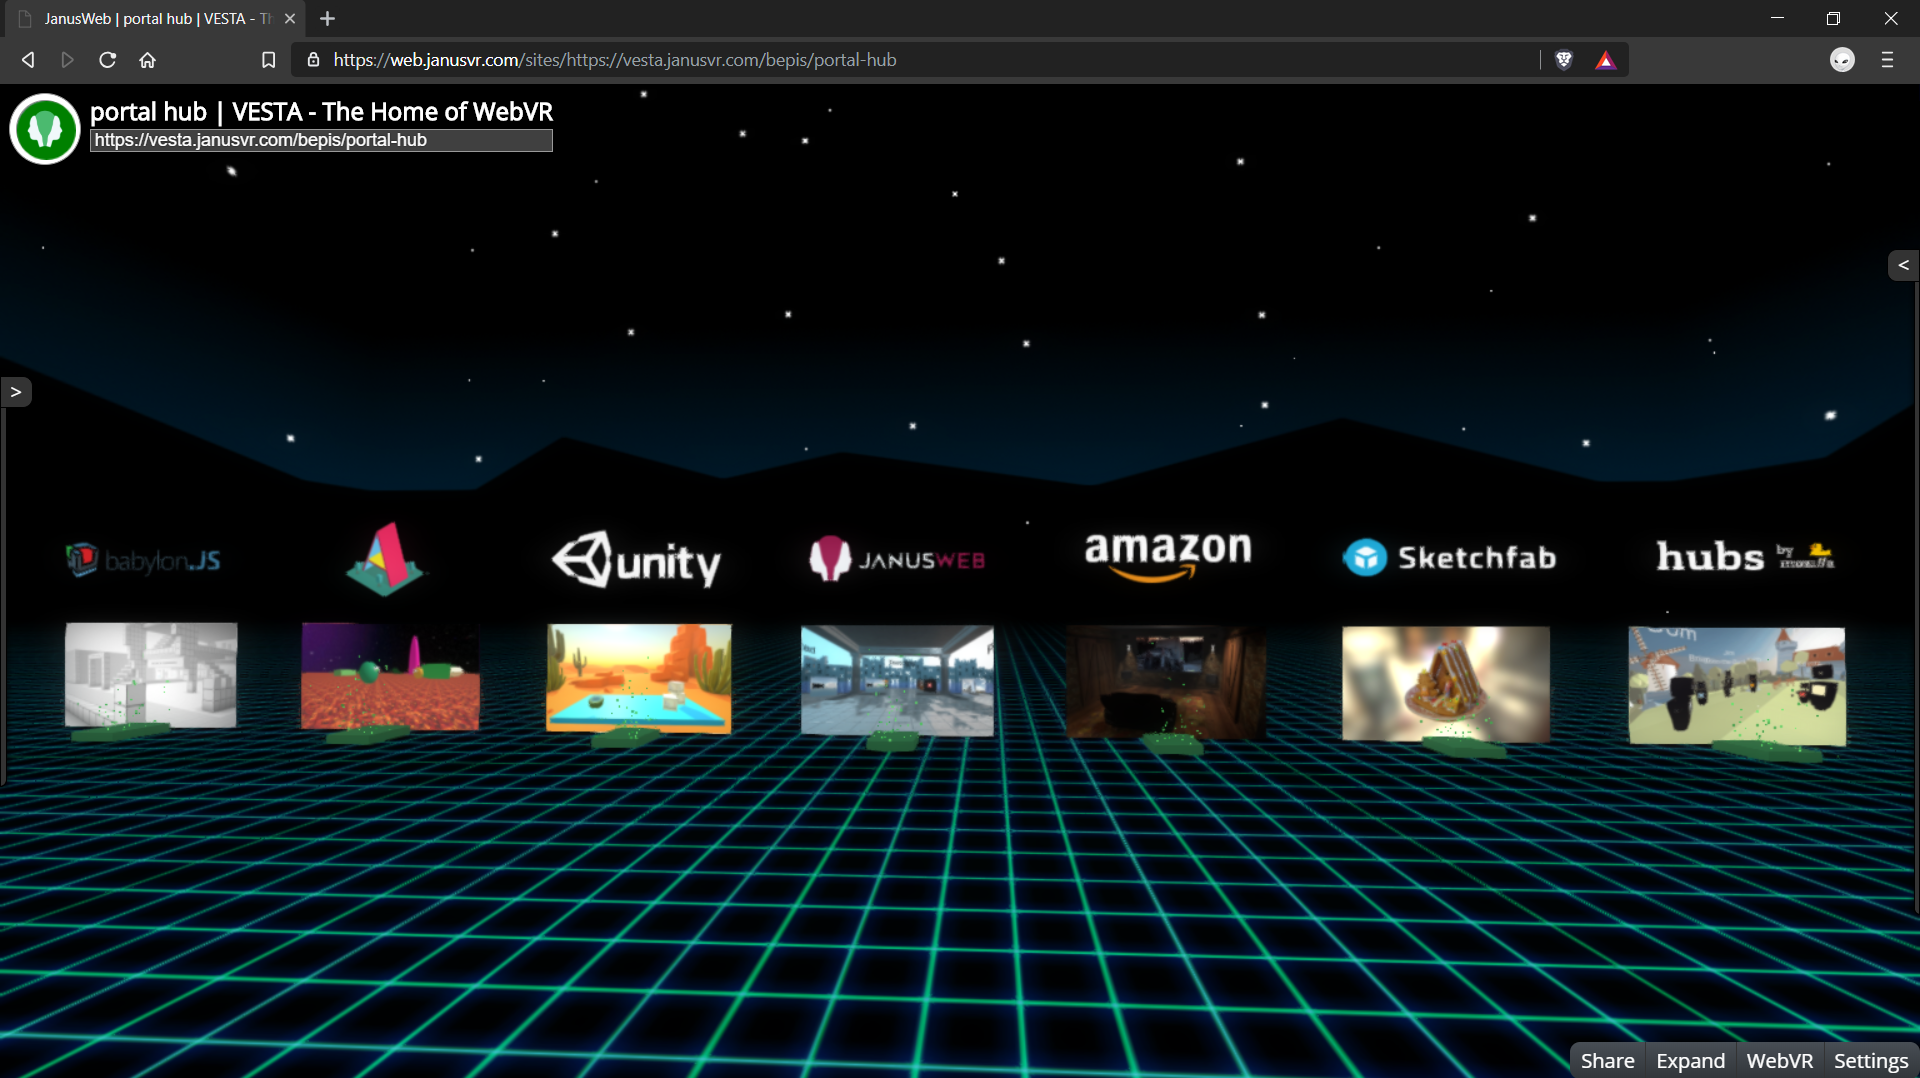 Portal hub linking to various other WebVR based worlds